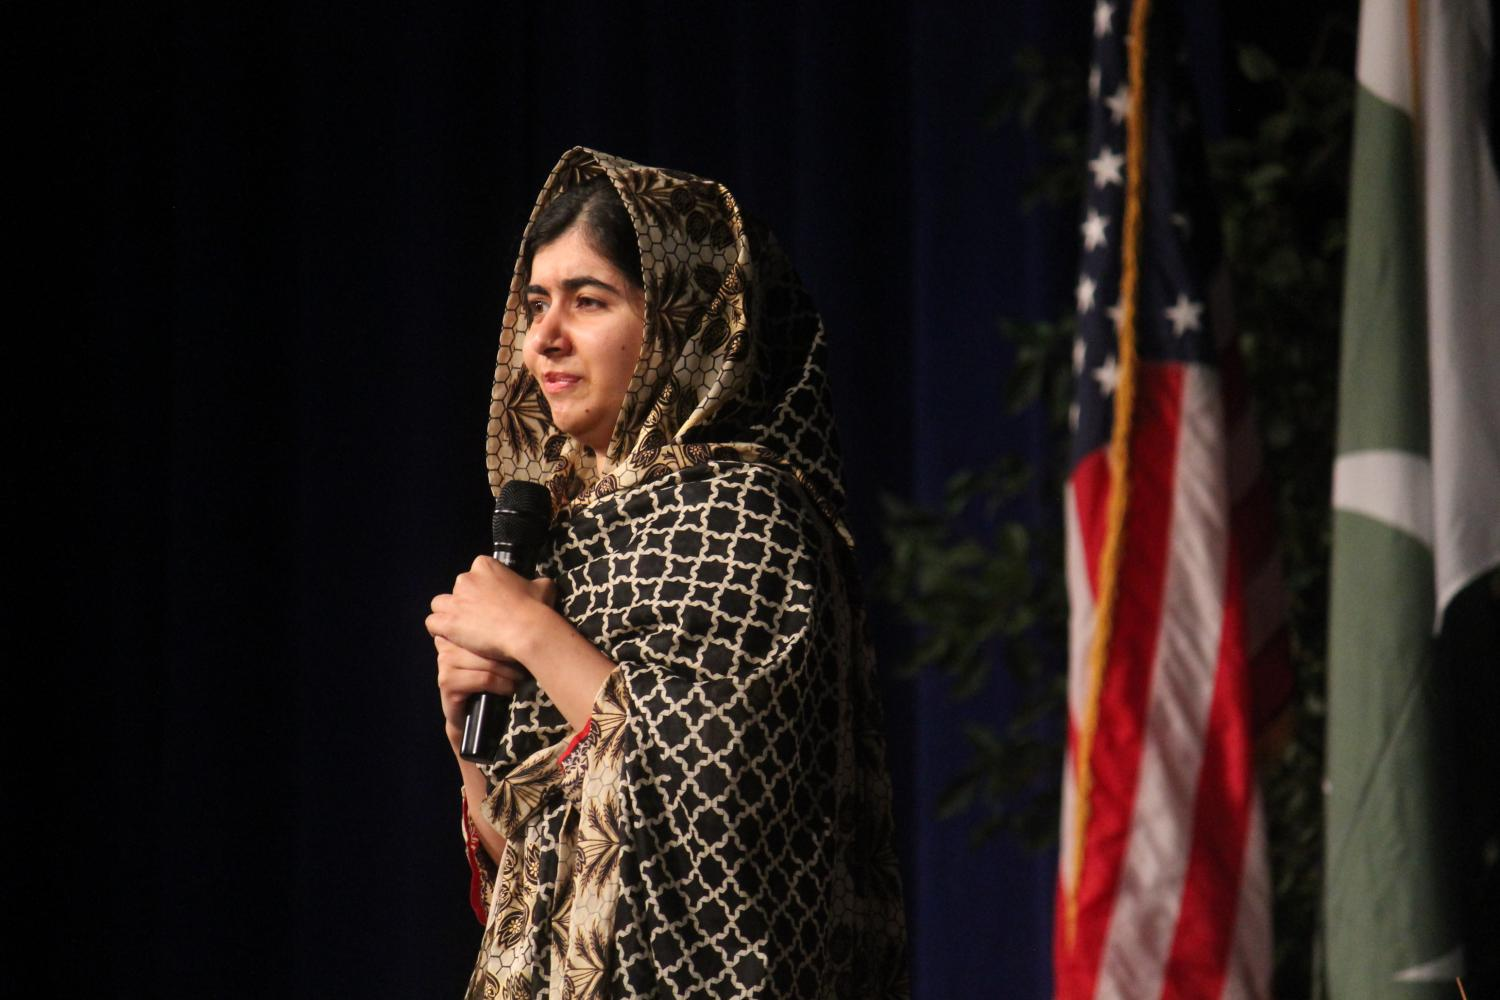 Malala Yousafzai speaks to crowd of almost 6,000 in the Univerity of Buffalo Alumni Arena / (Francesca Bond / The Record)